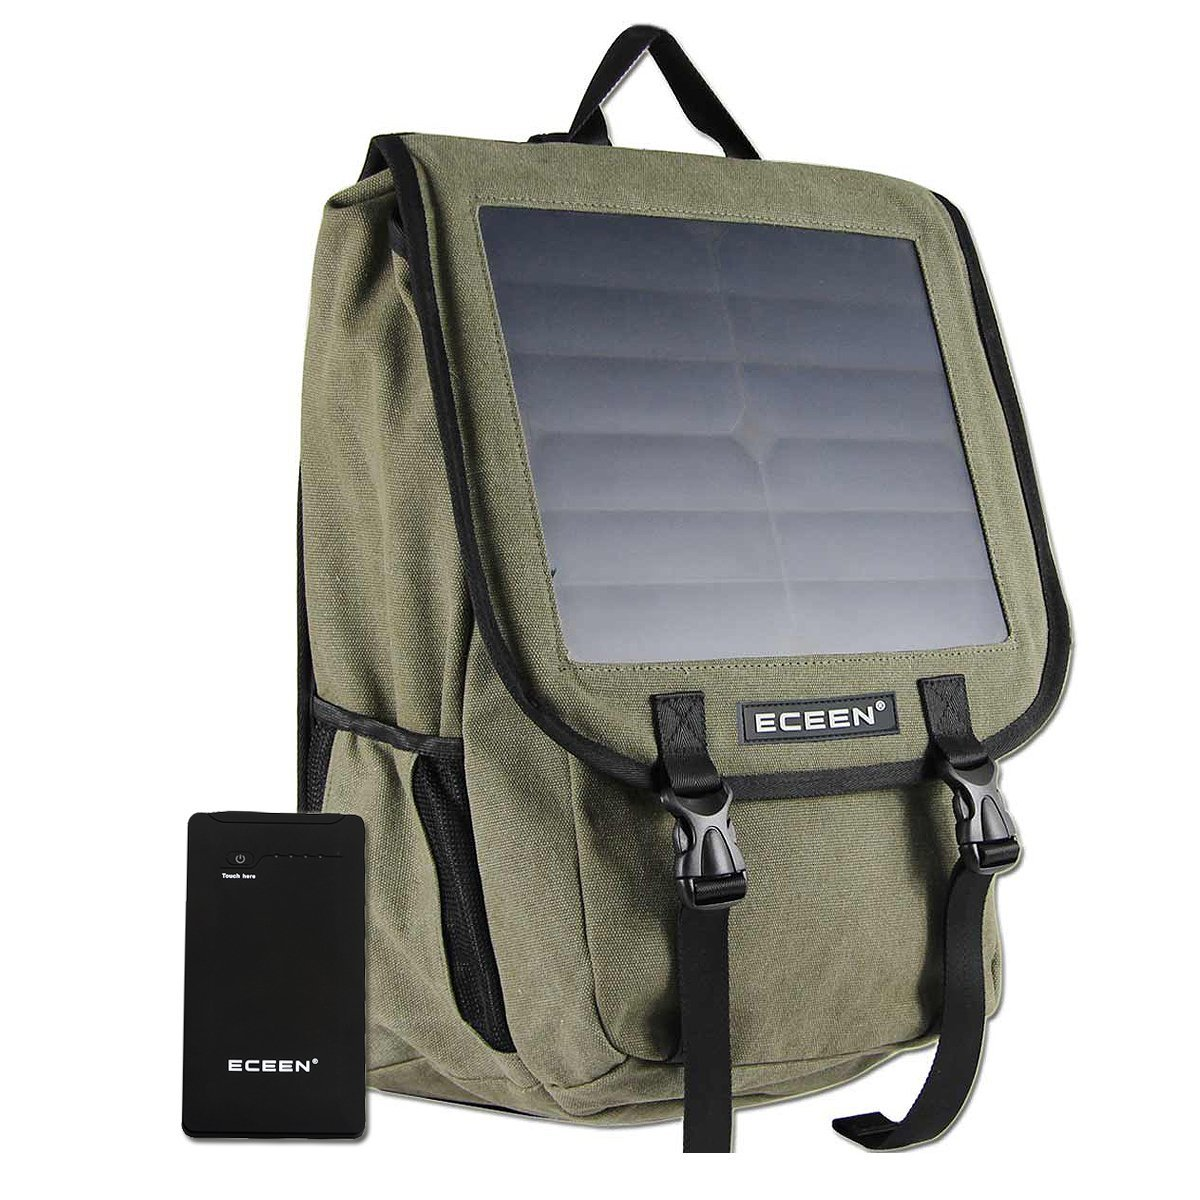 Bag Pack with Solar Panel Charger, Power Bank for Smart Phone, Speaker, Table